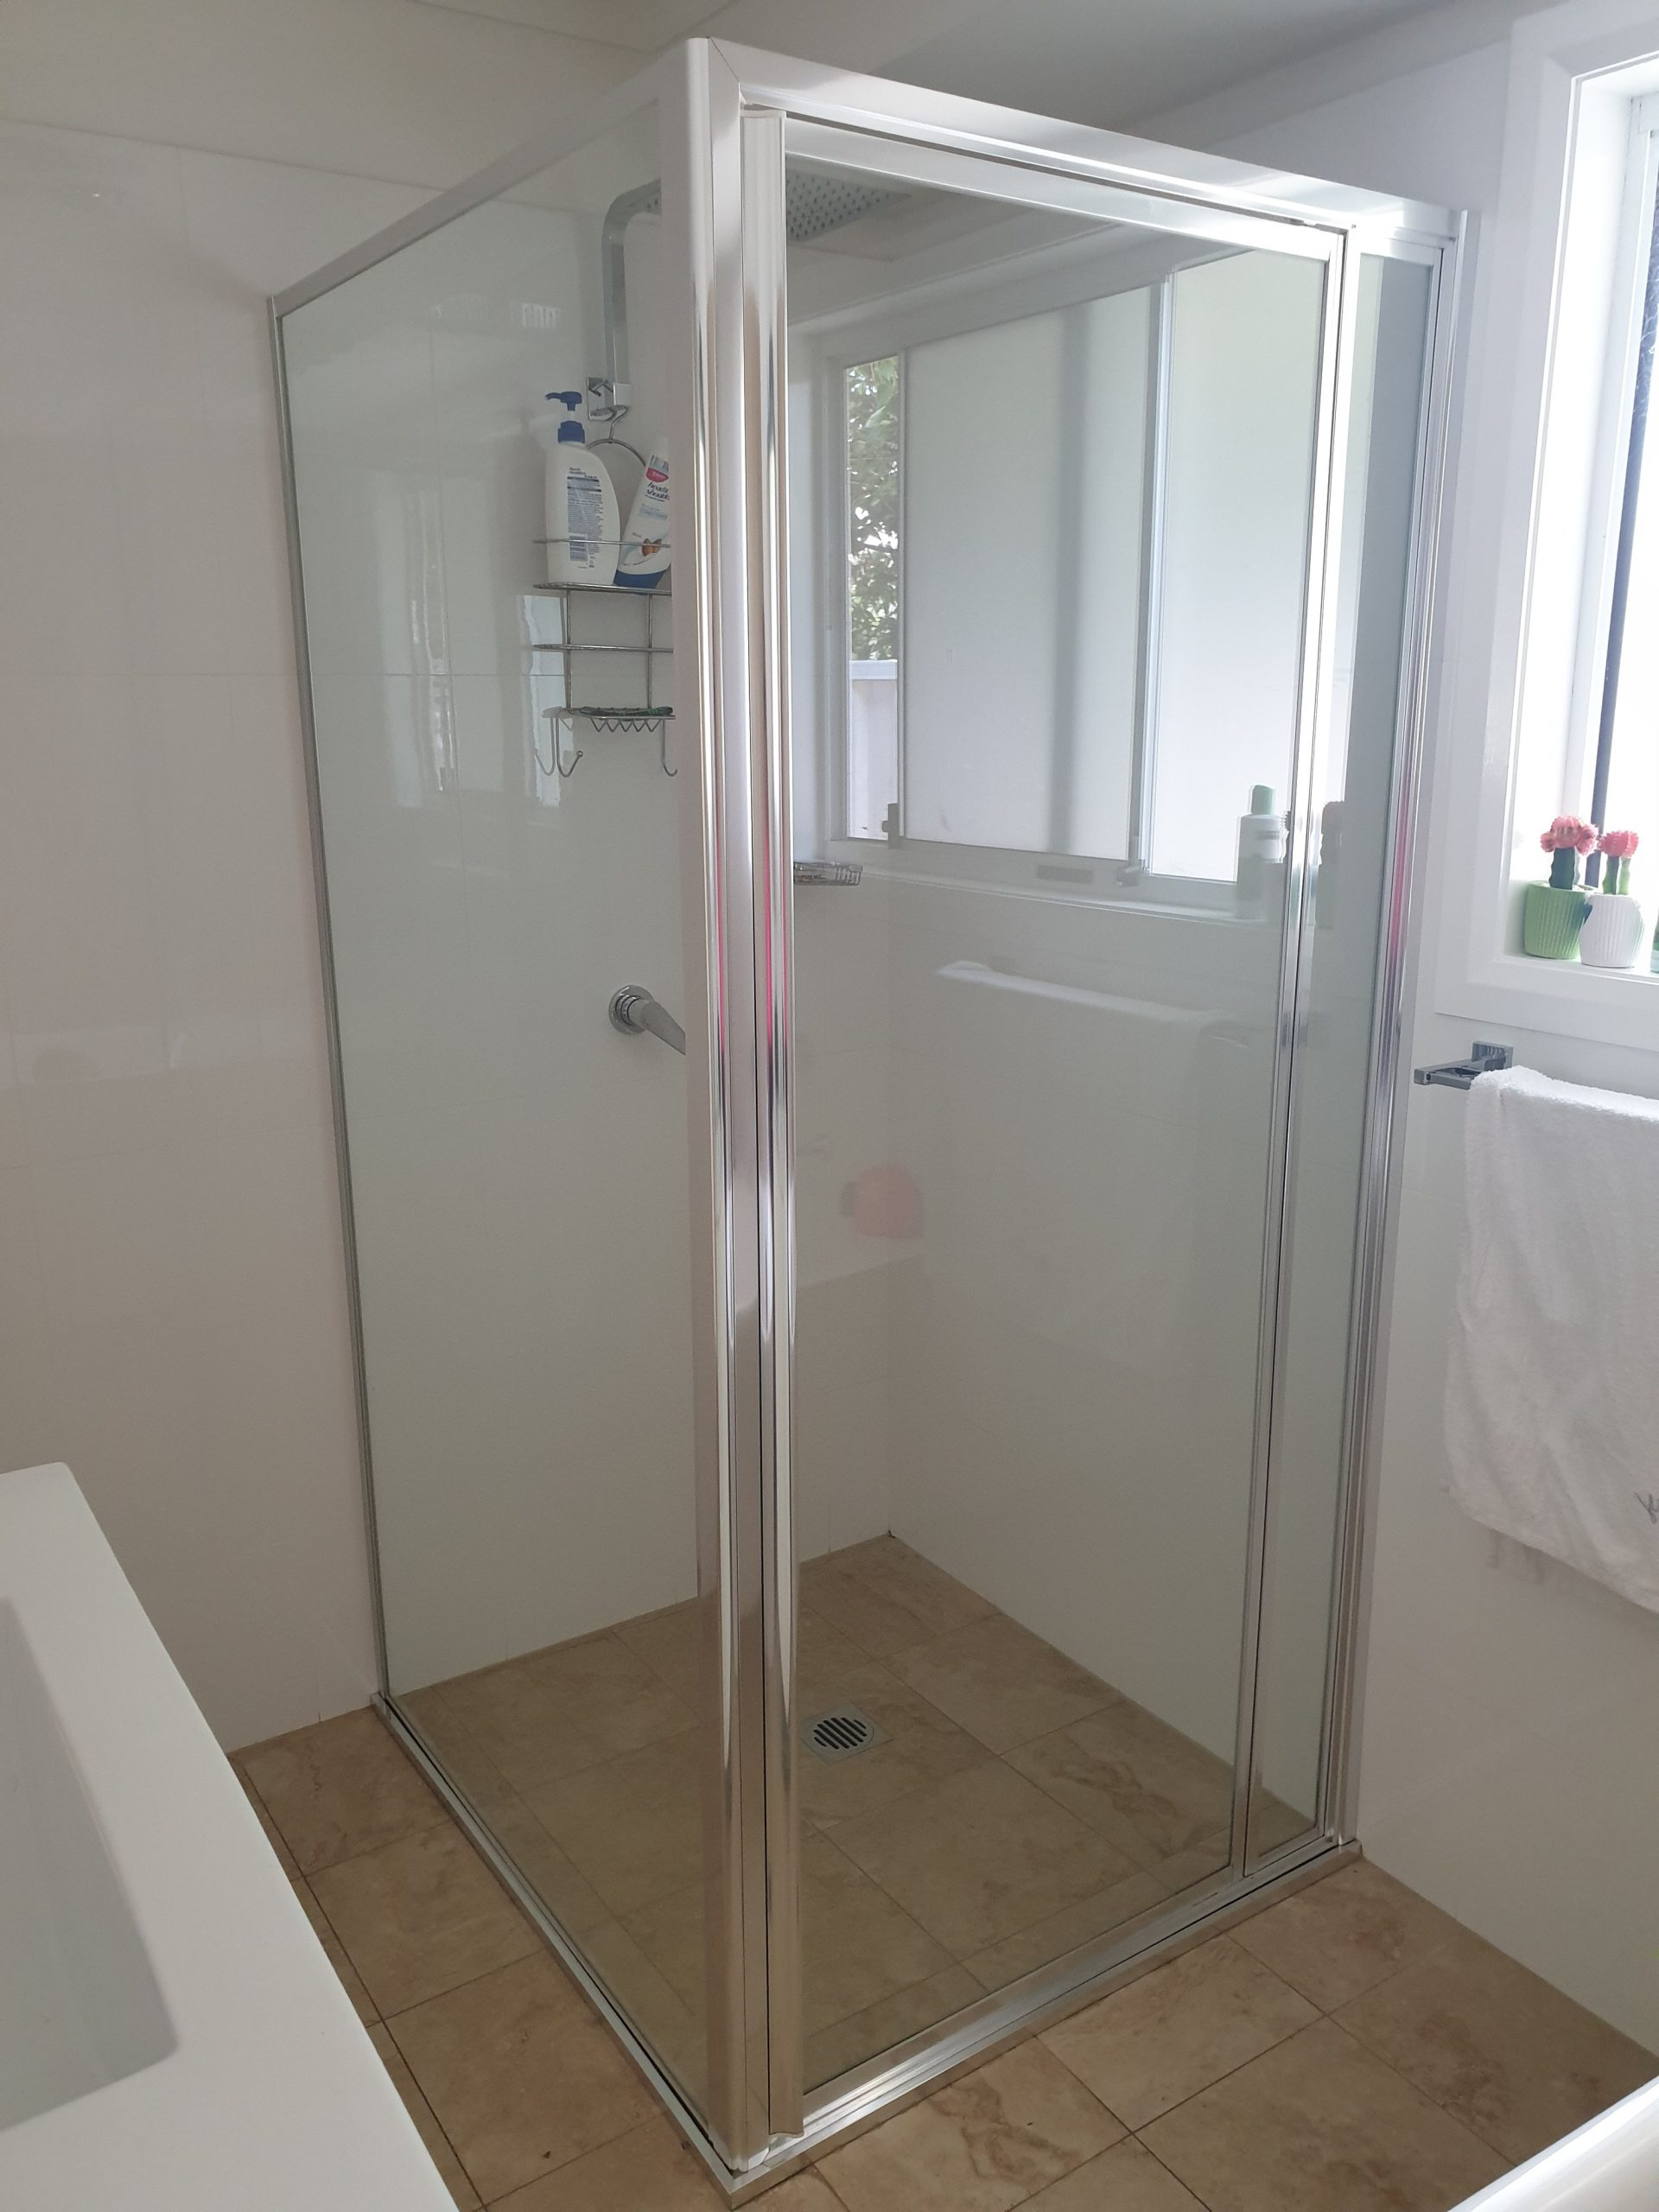 Pros & Cons of Framed Shower Screens